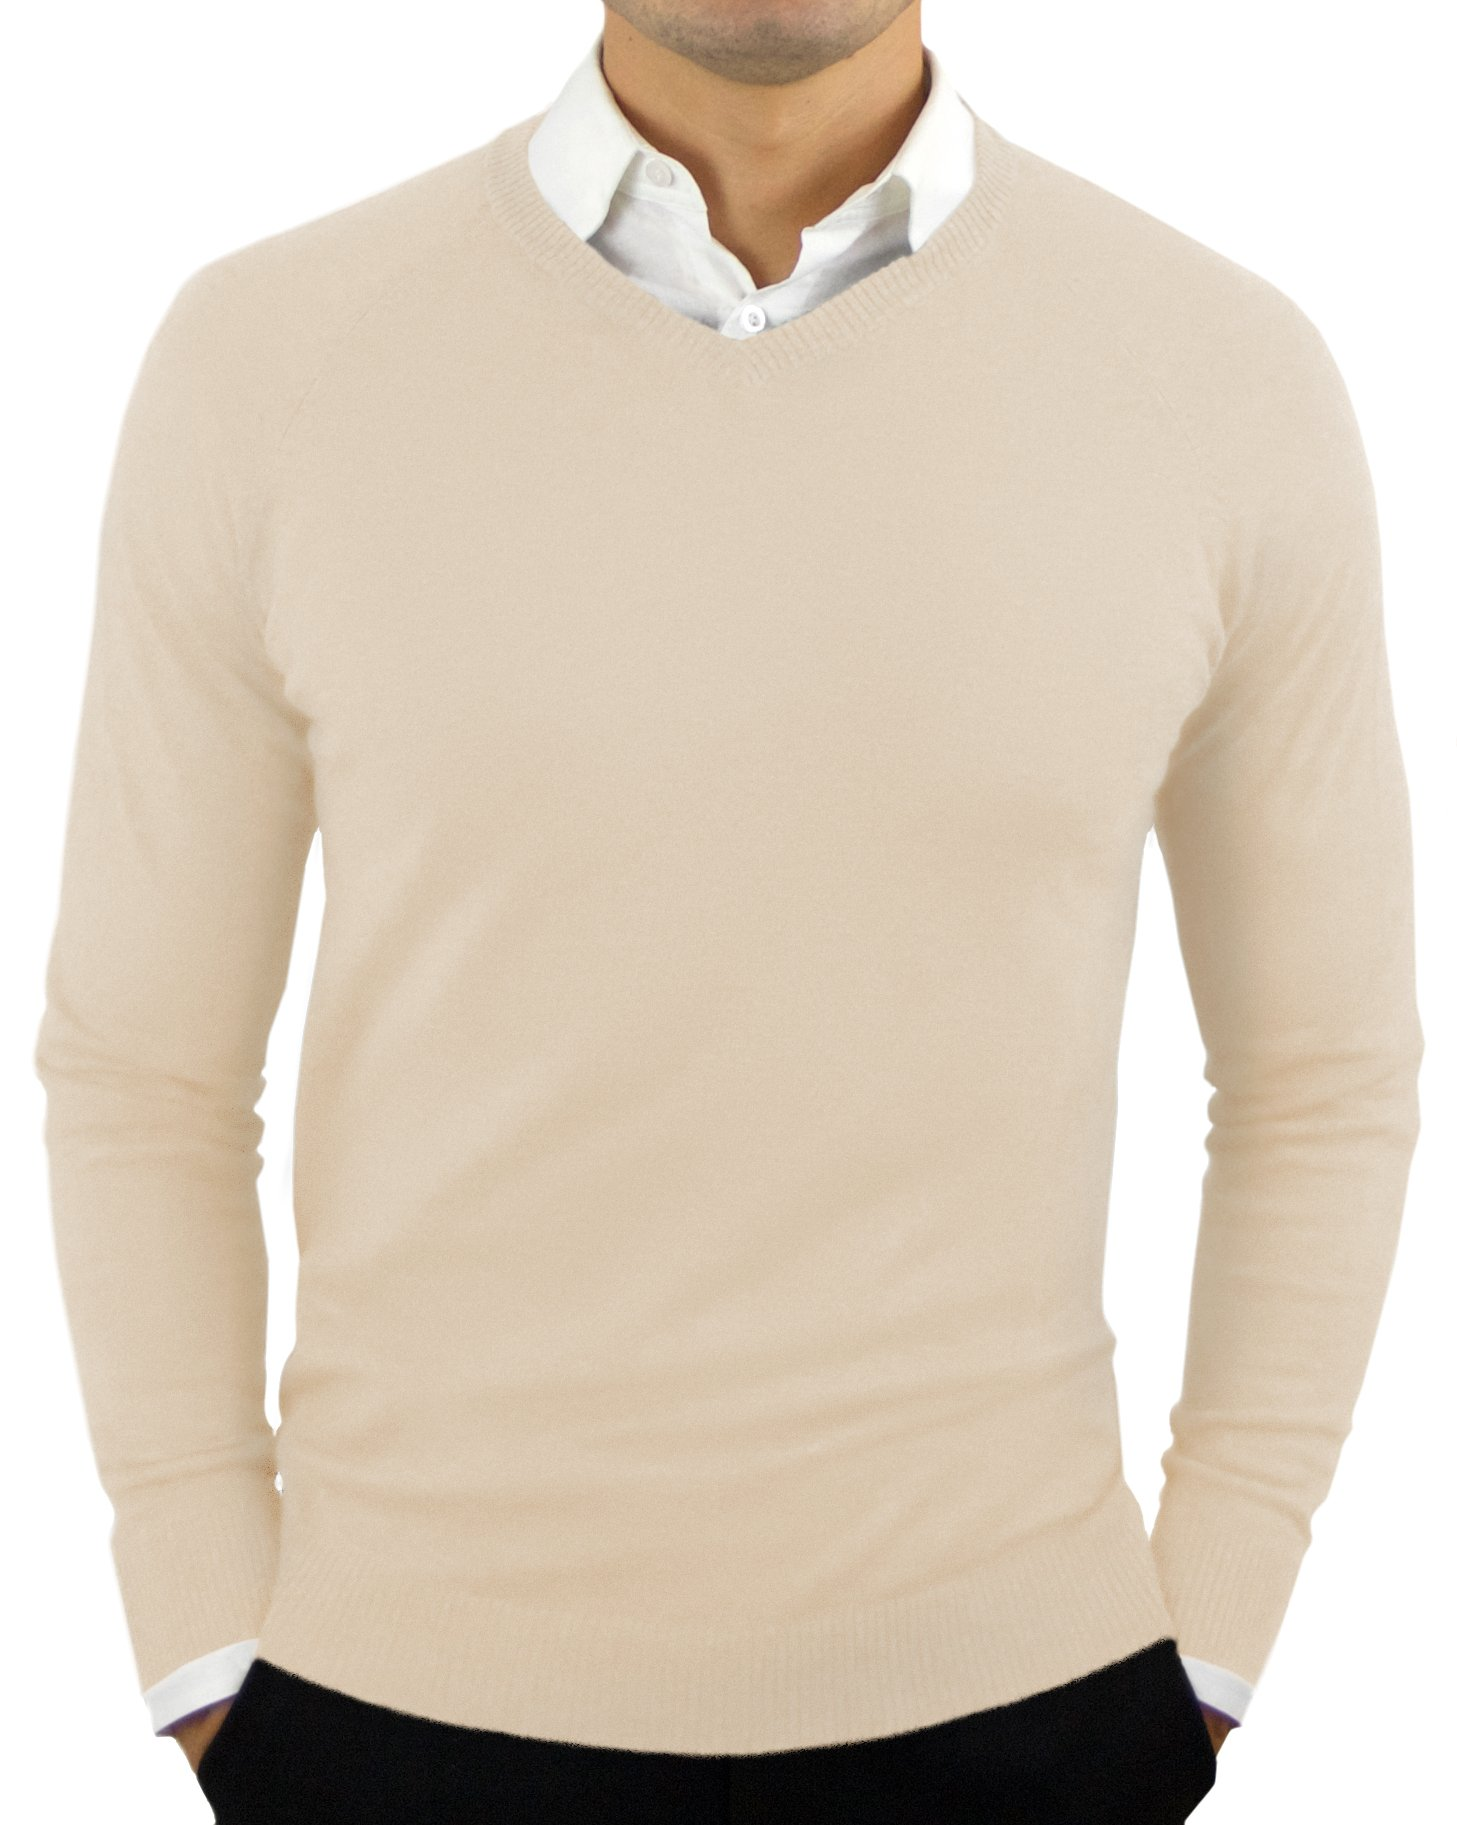 Comfortably Collared Men's Perfect Slim Fit Lightweight Soft Fitted V-Neck Pullover Sweater, Large, Oatmeal Beige